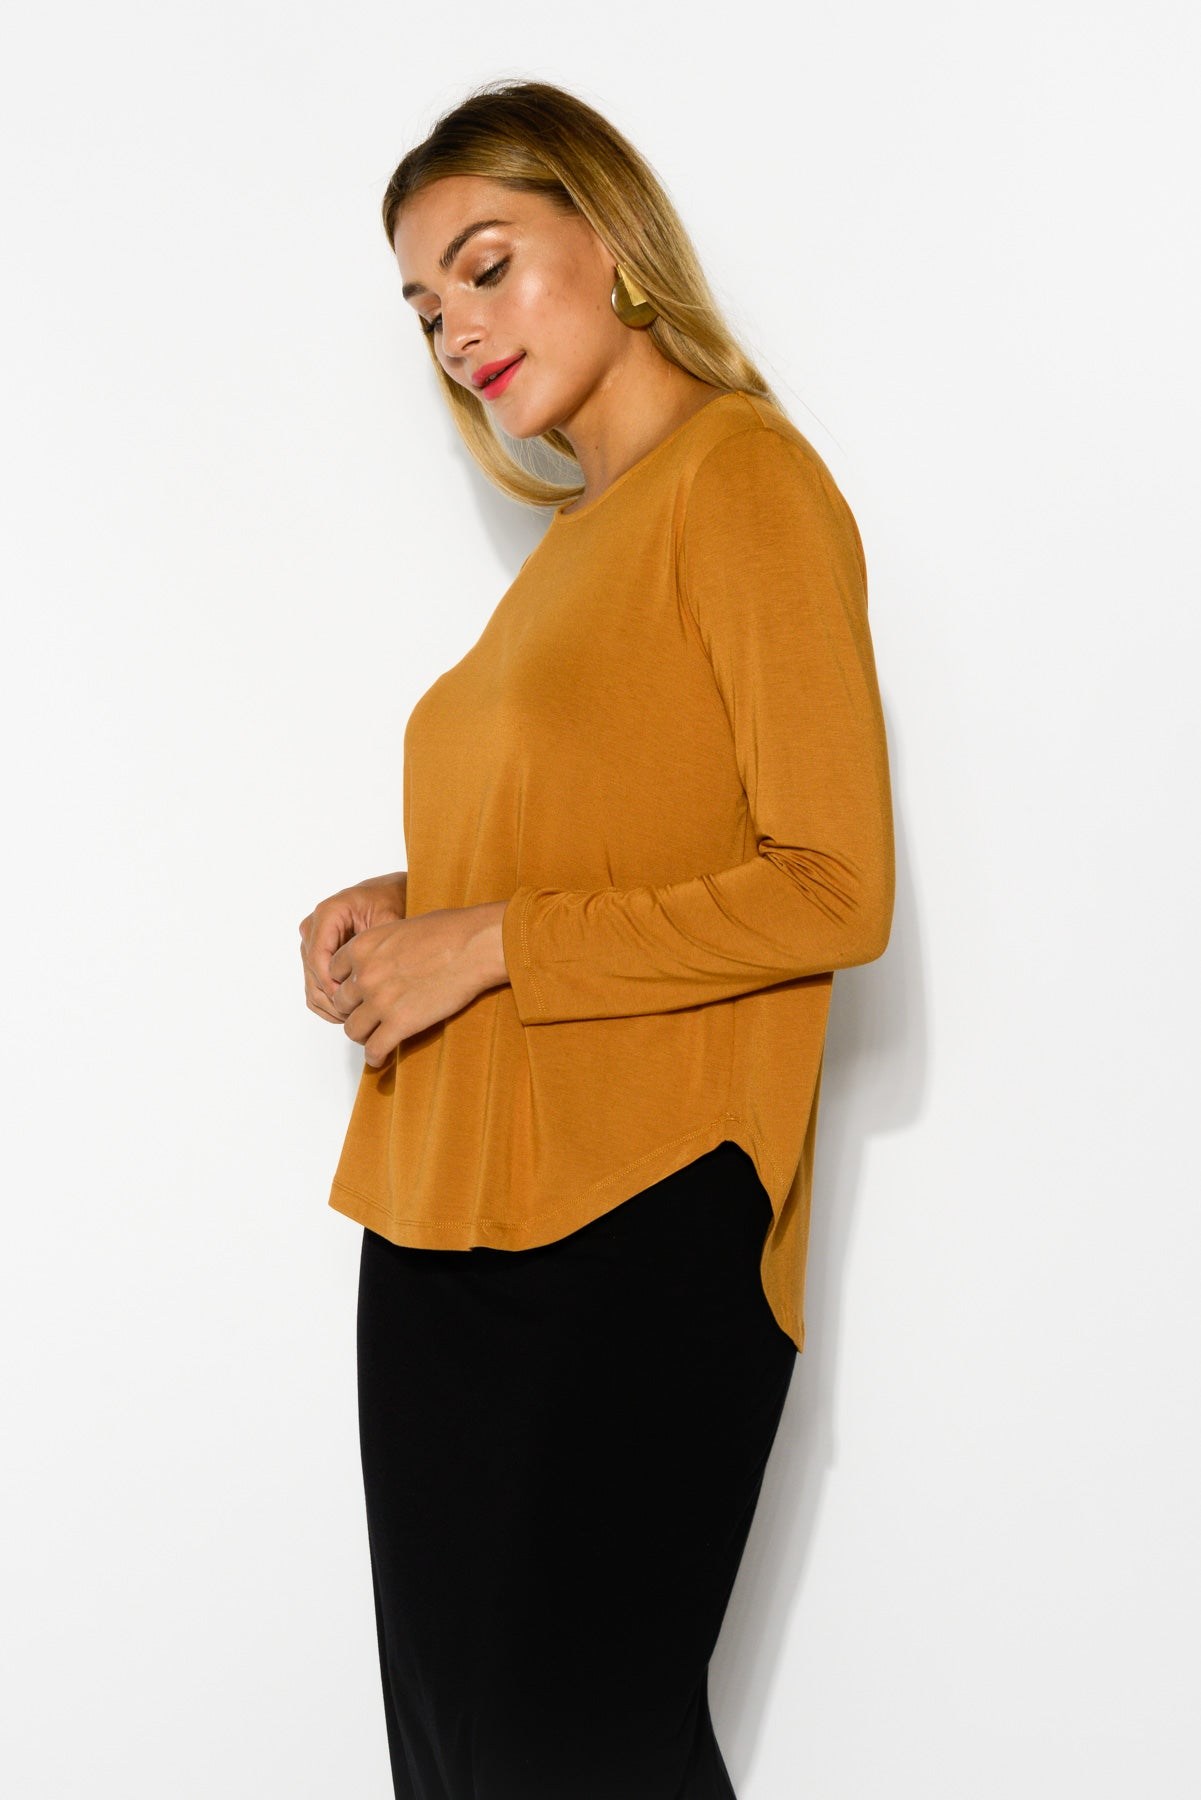 Adele Caramel Bamboo Long Sleeve Top - Blue Bungalow